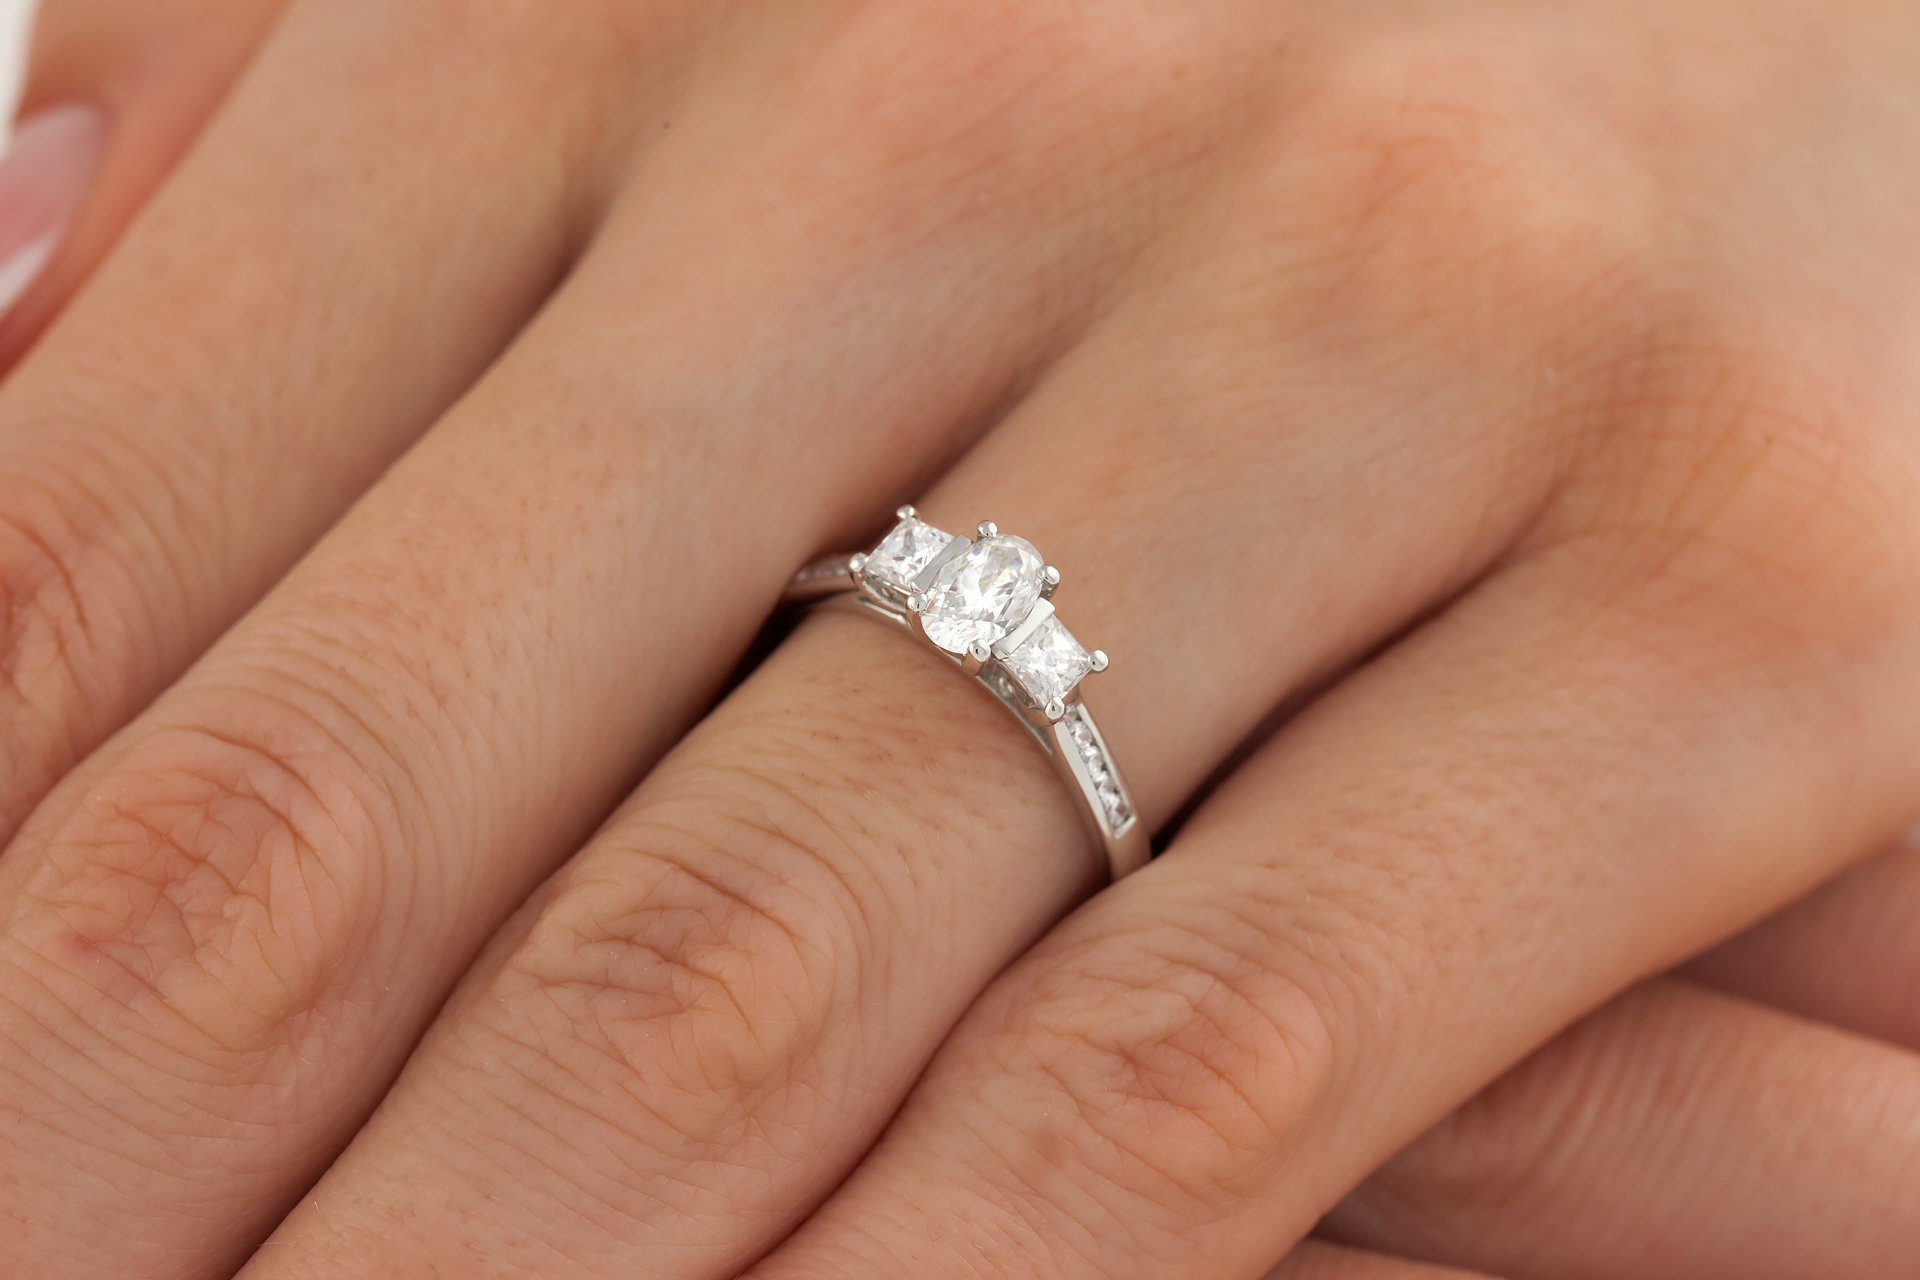 ring weddings diamond engagement glamorous and com tips affordable unique on glamour trends rings buying bands in main courtesy